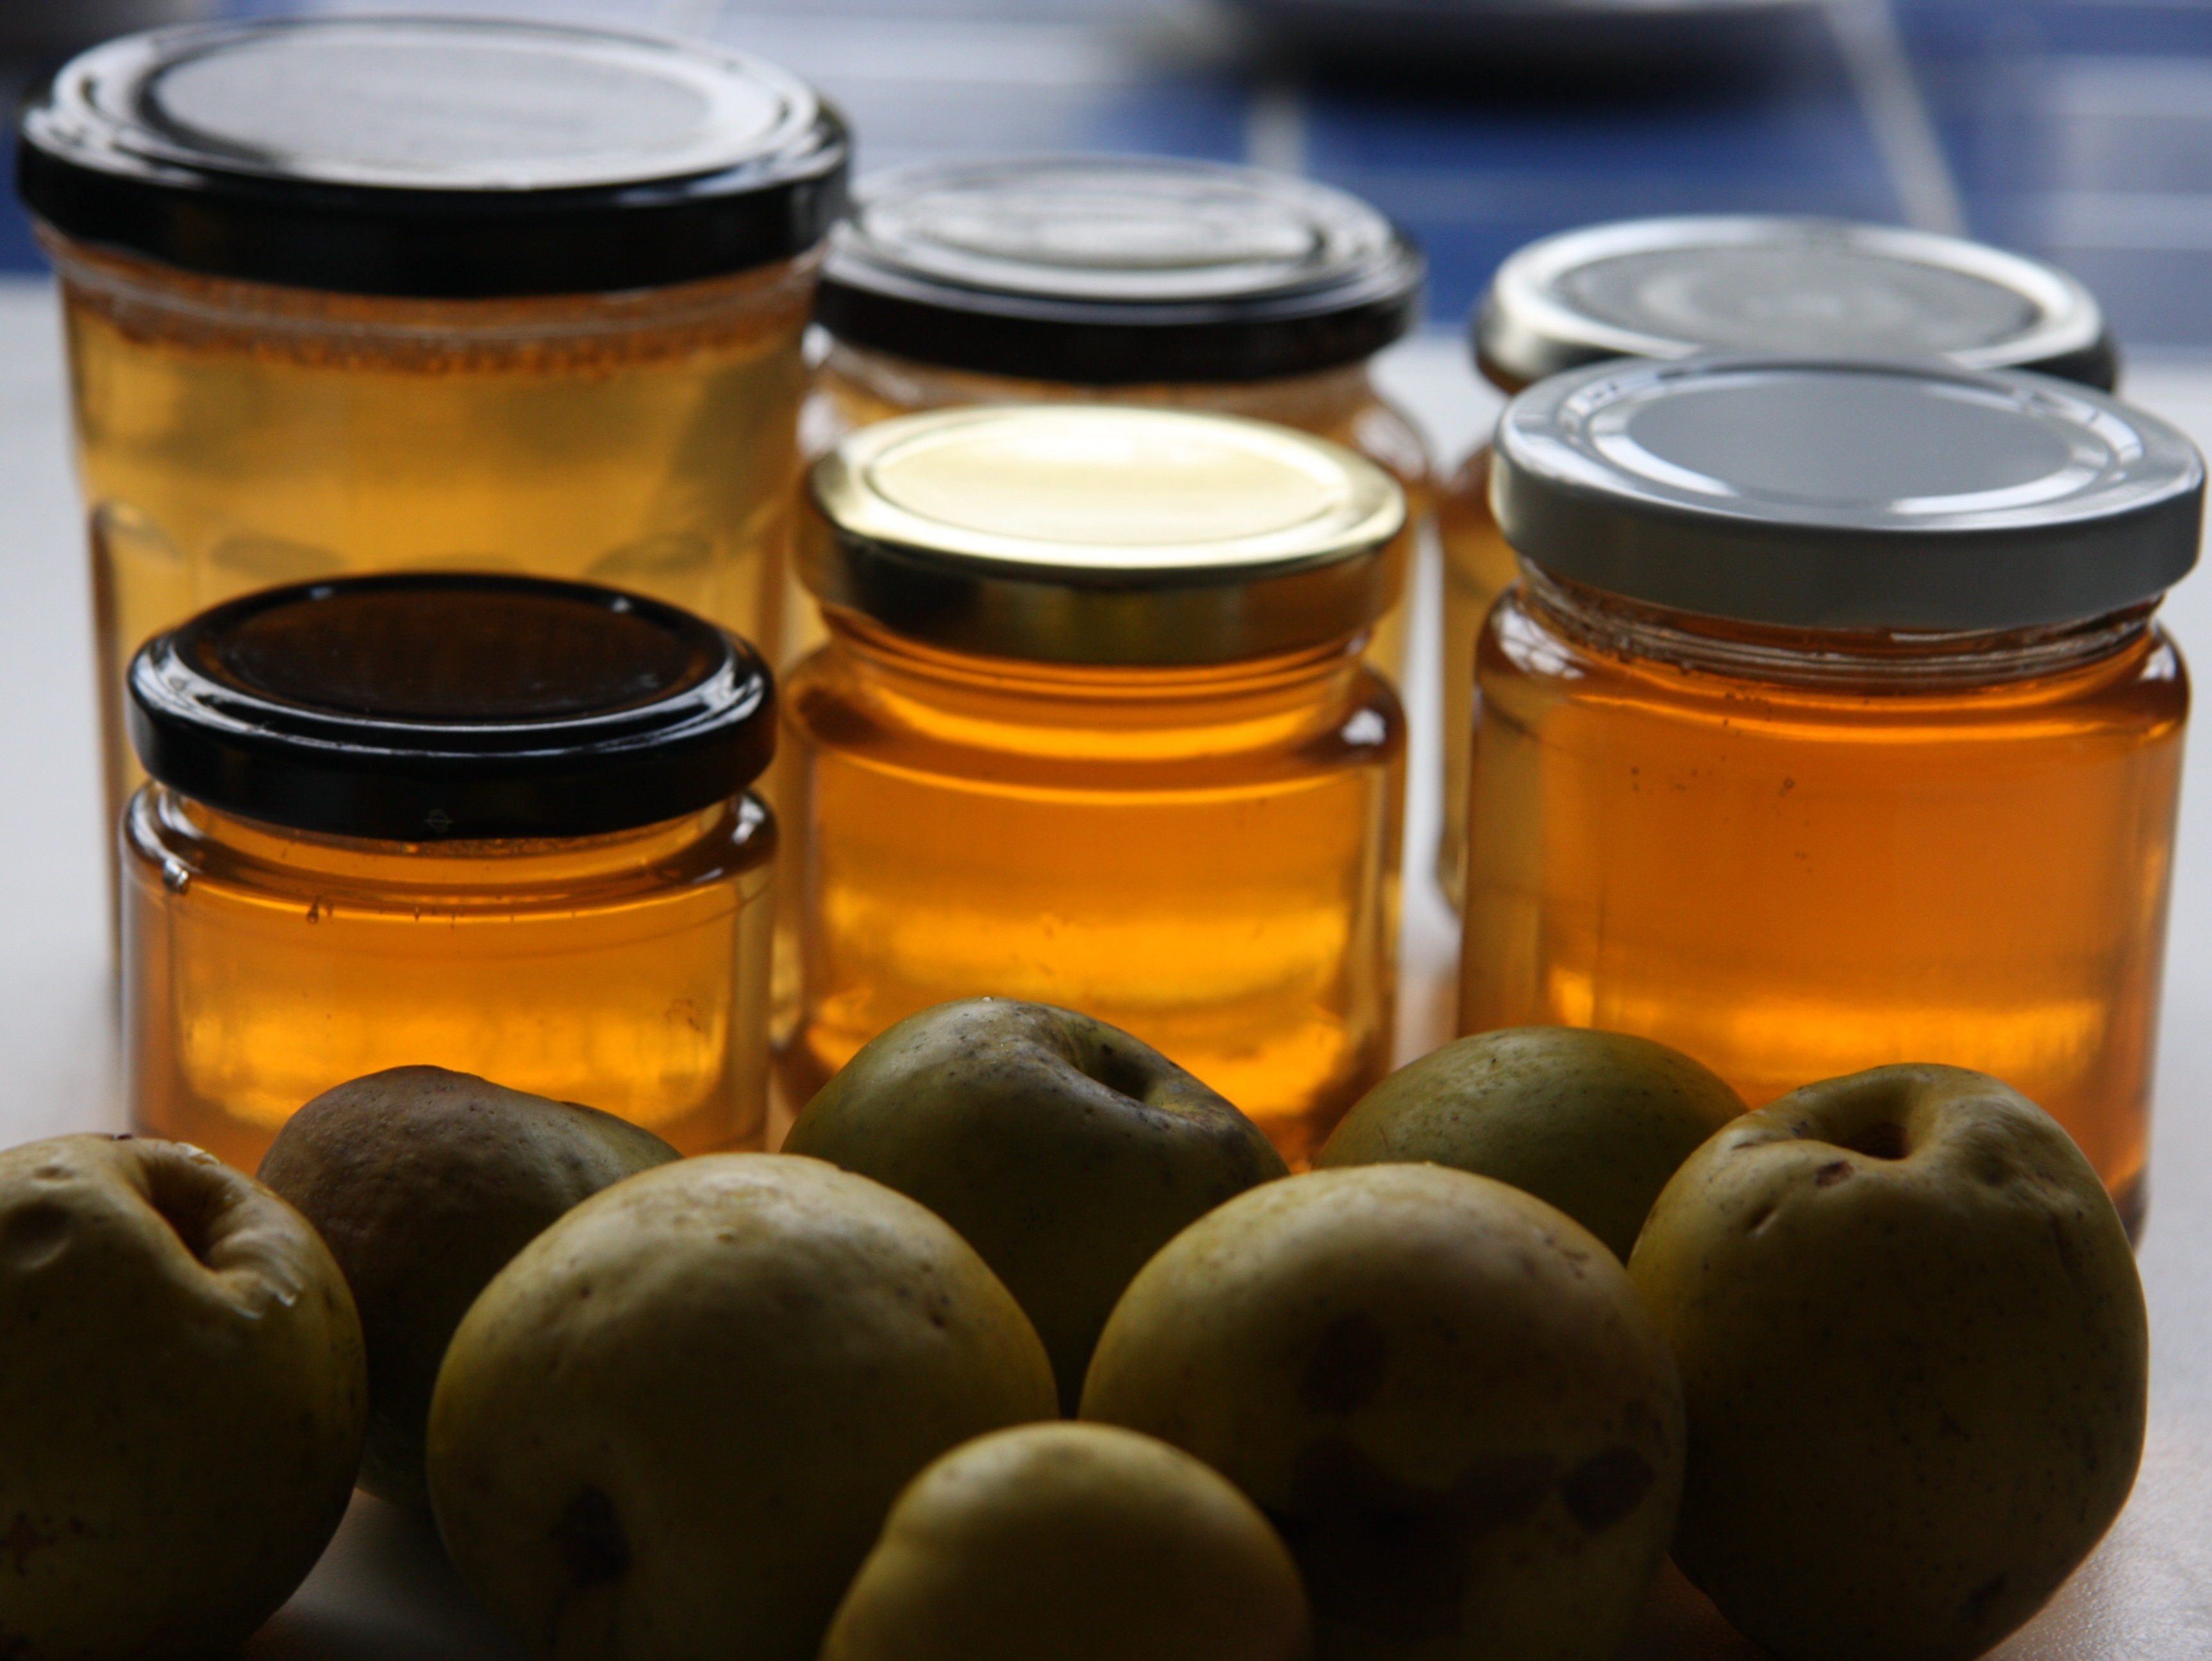 ... all about that Quince: Jelly, Paste and Brandy – lovinghomemade